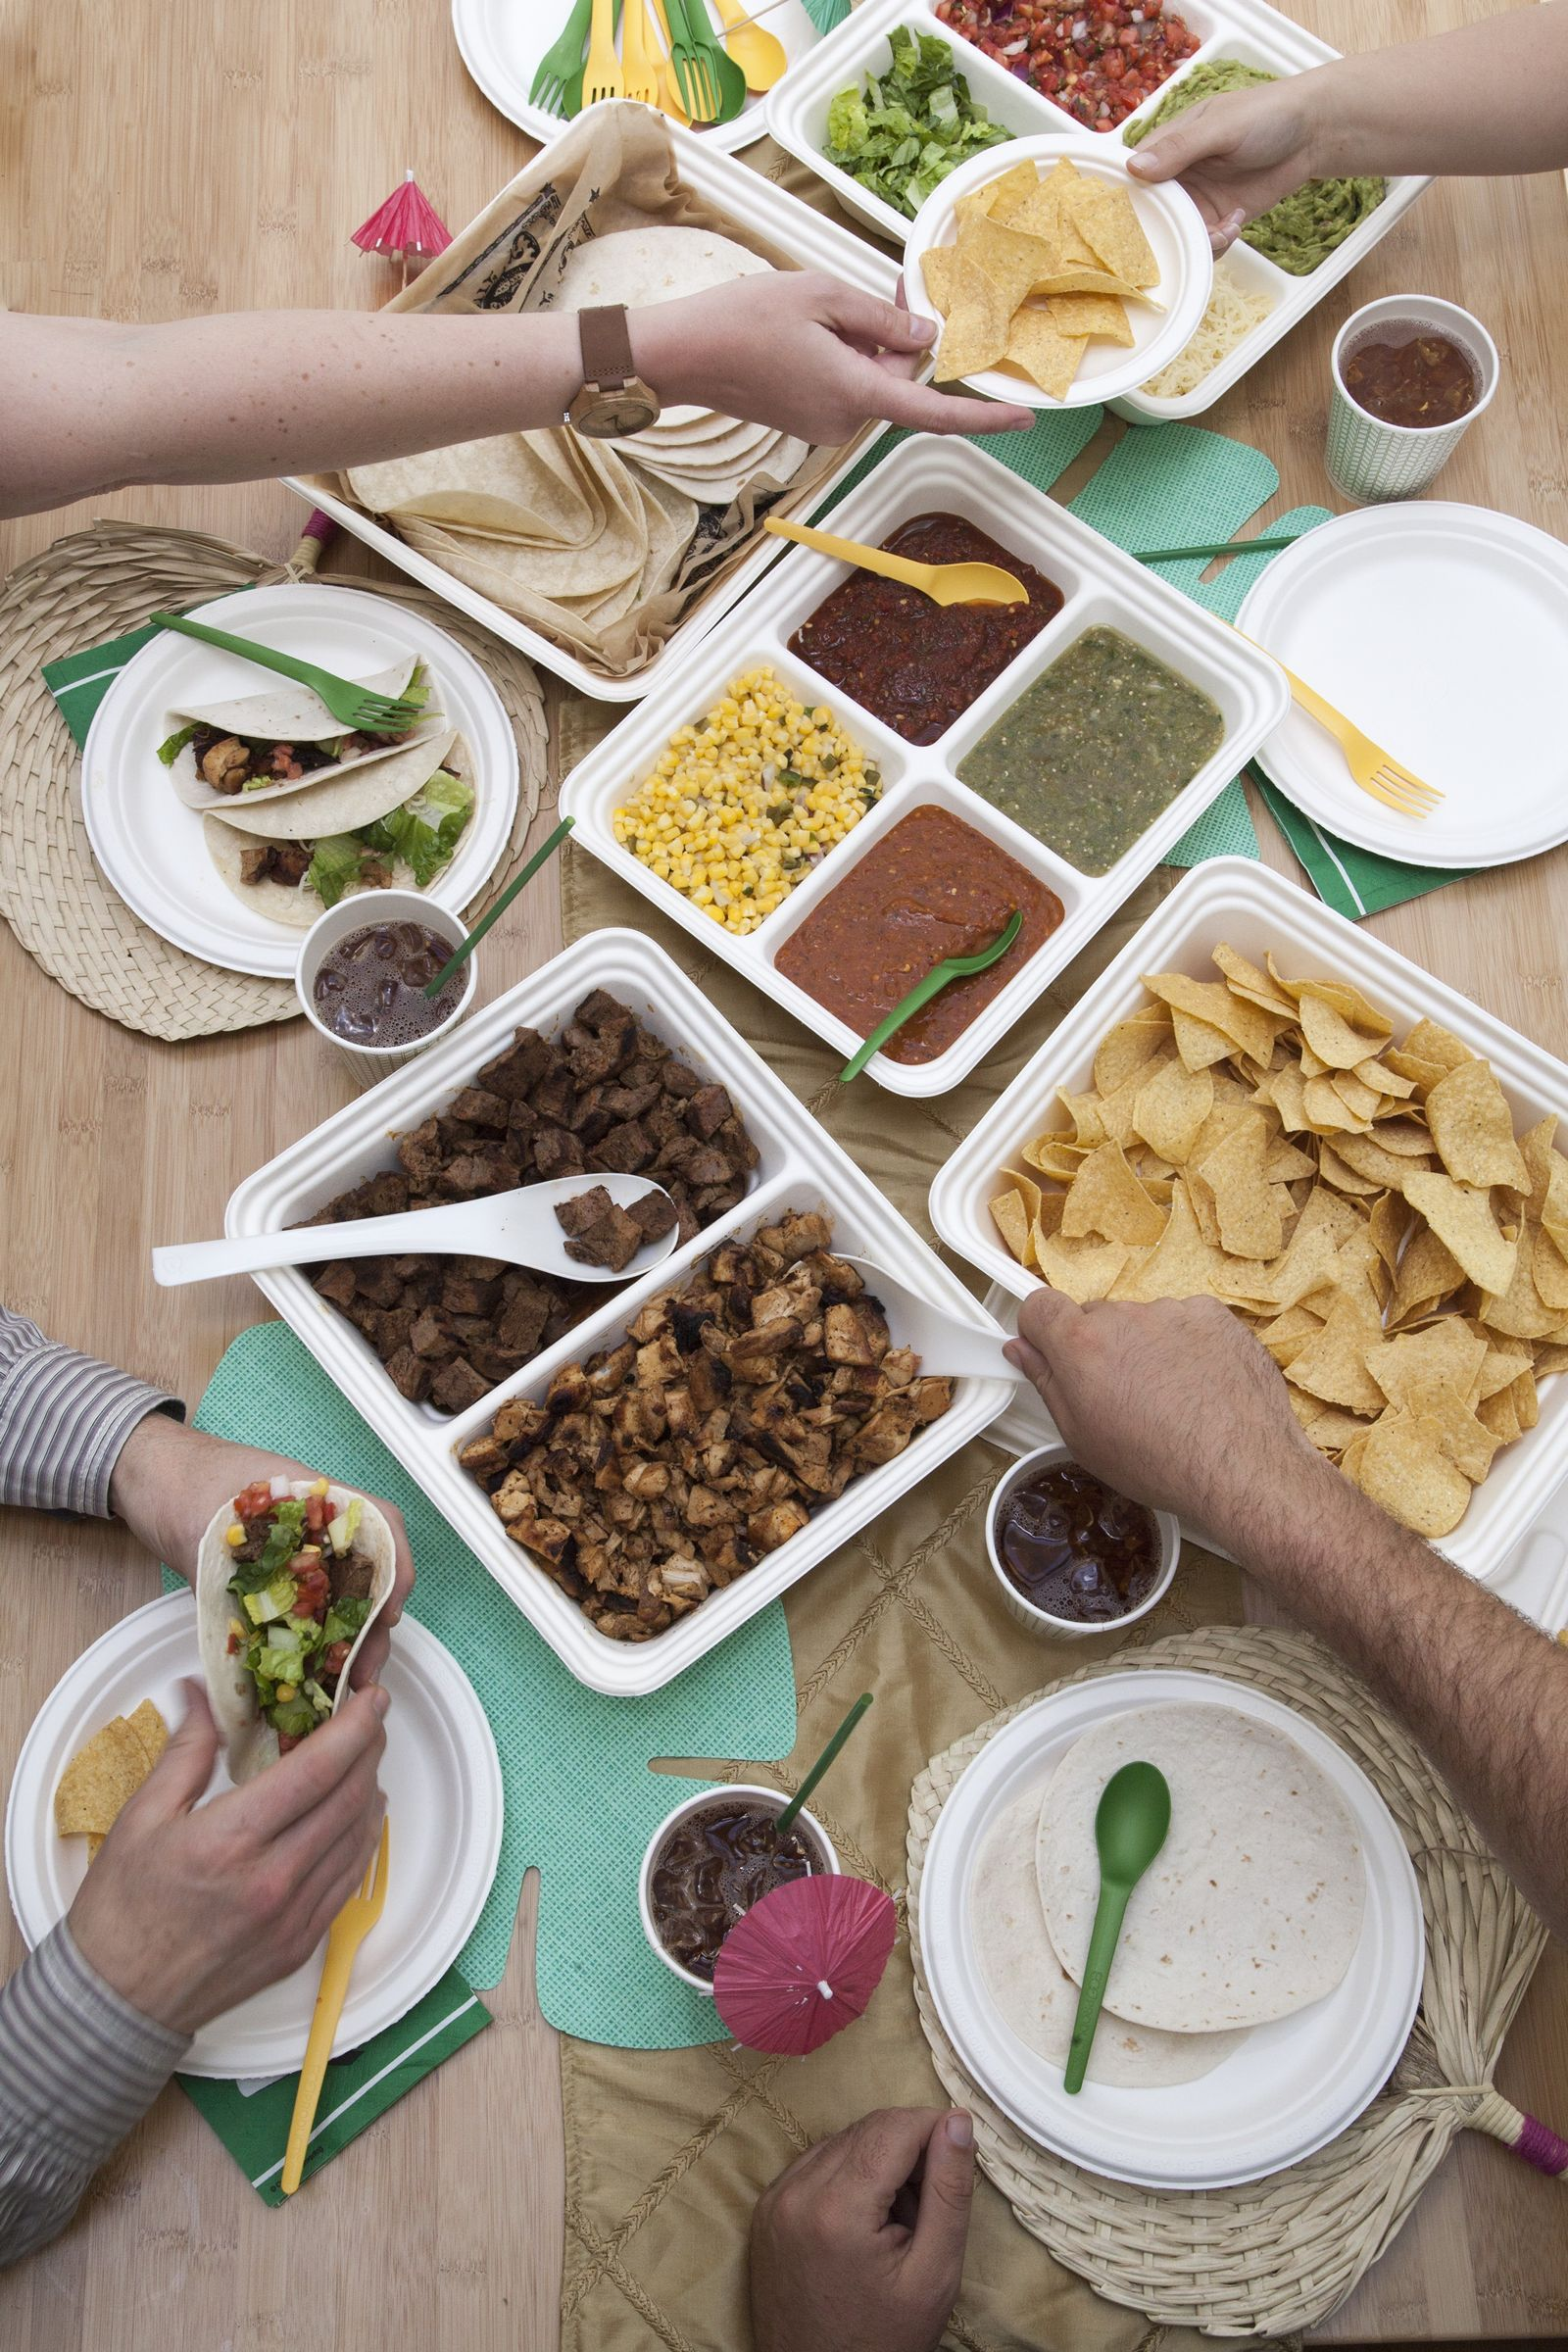 Eco-Products Expands Compostable Servingware that's Better for Caterers - and the Planet